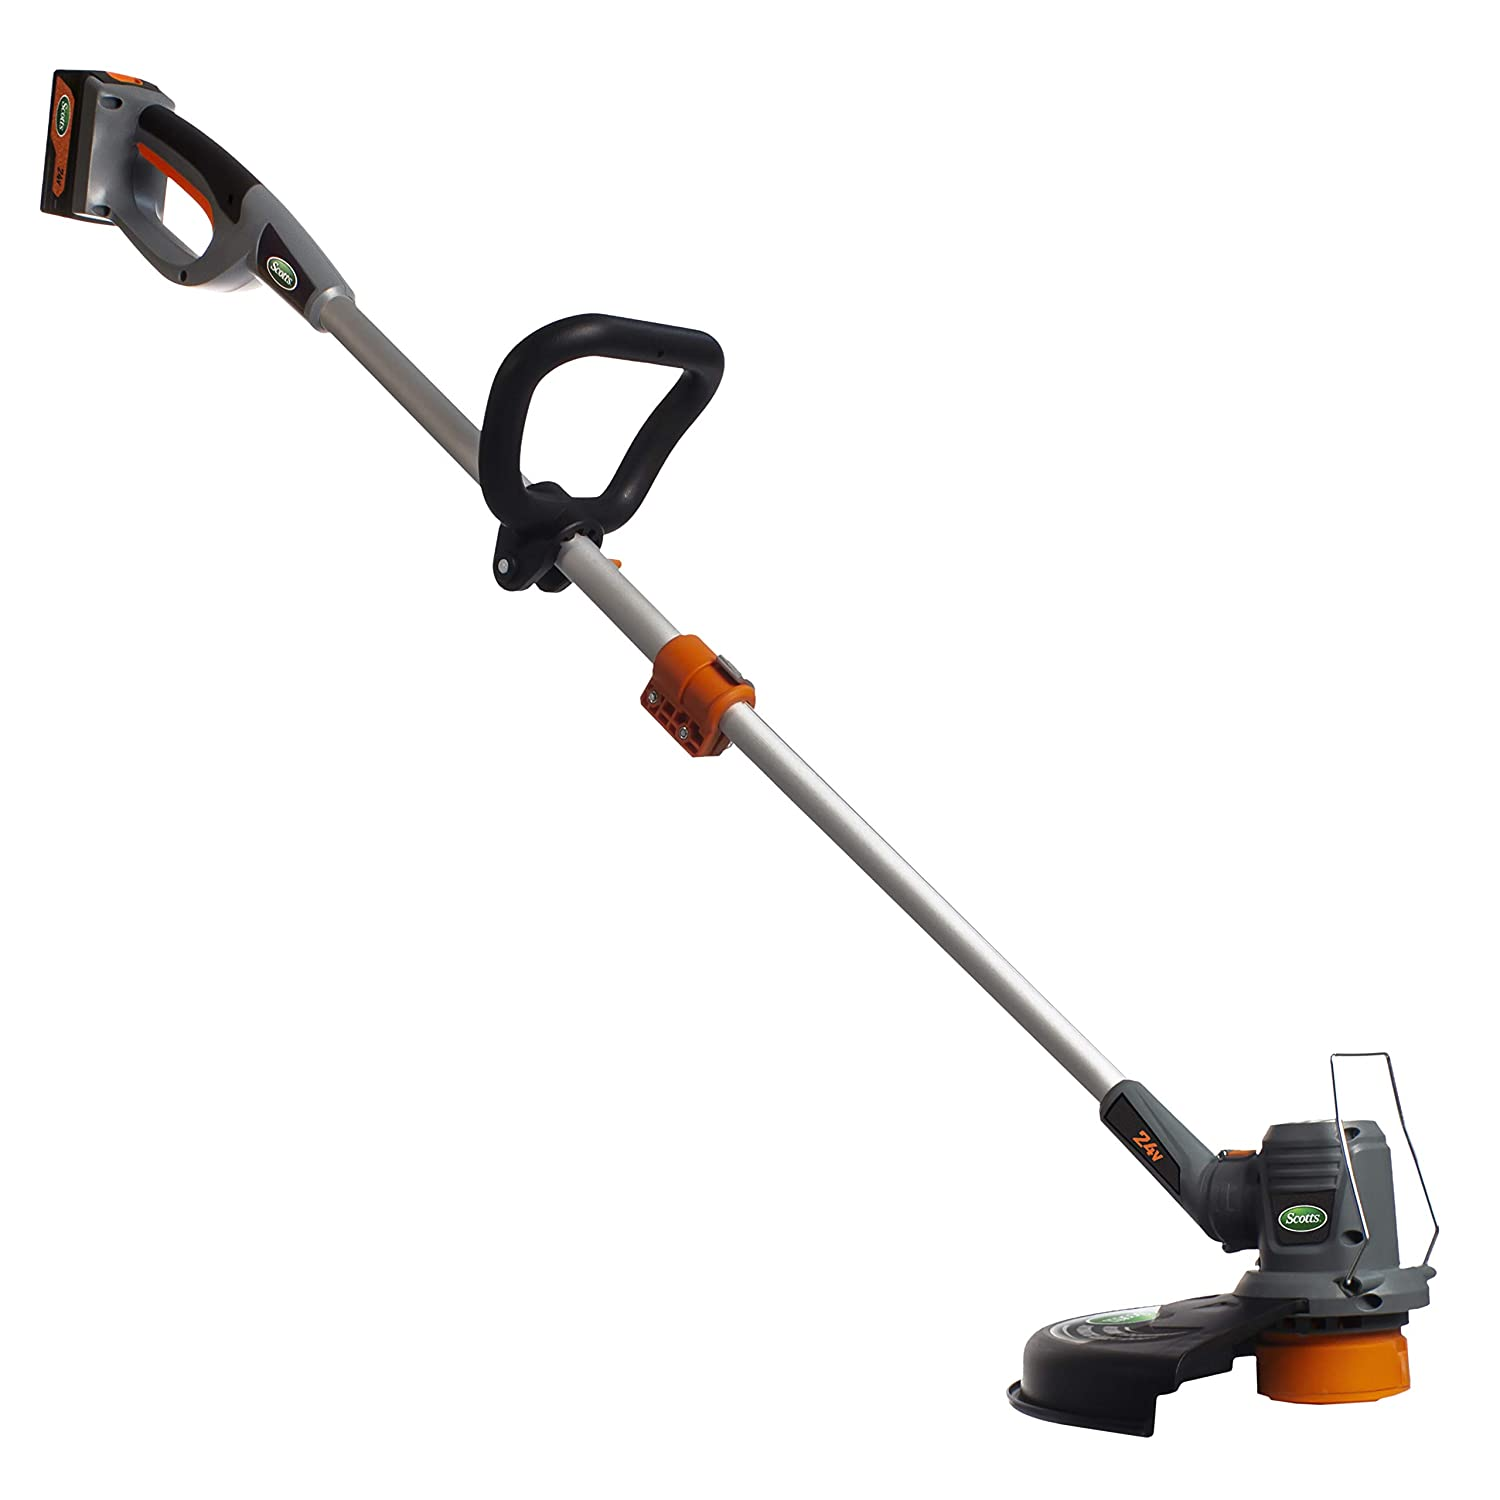 Scotts Outdoor Power Tools LST01324S 24-Volt 13-Inch Cordless String Trimmer, 2Ah Battery Fast Charger Included